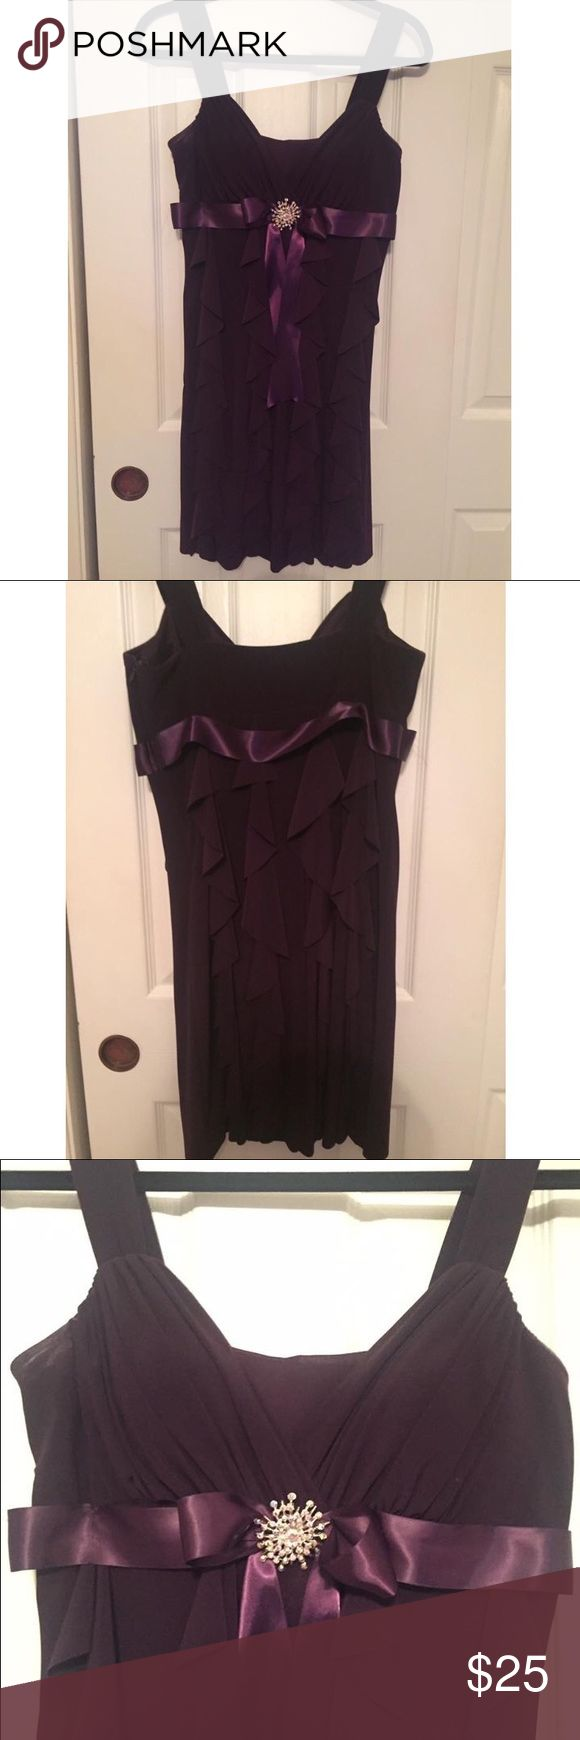 Size 10p Deep Purple Dress Worn once!!! Been kept in a closet ever since. Very flattering dress. There's a description picture posted of another site I've posted it on to sell. I added a piece between the V neck line since I was in 8th grade when I wore it. Can be easily removed! Betsy & Adam Dresses